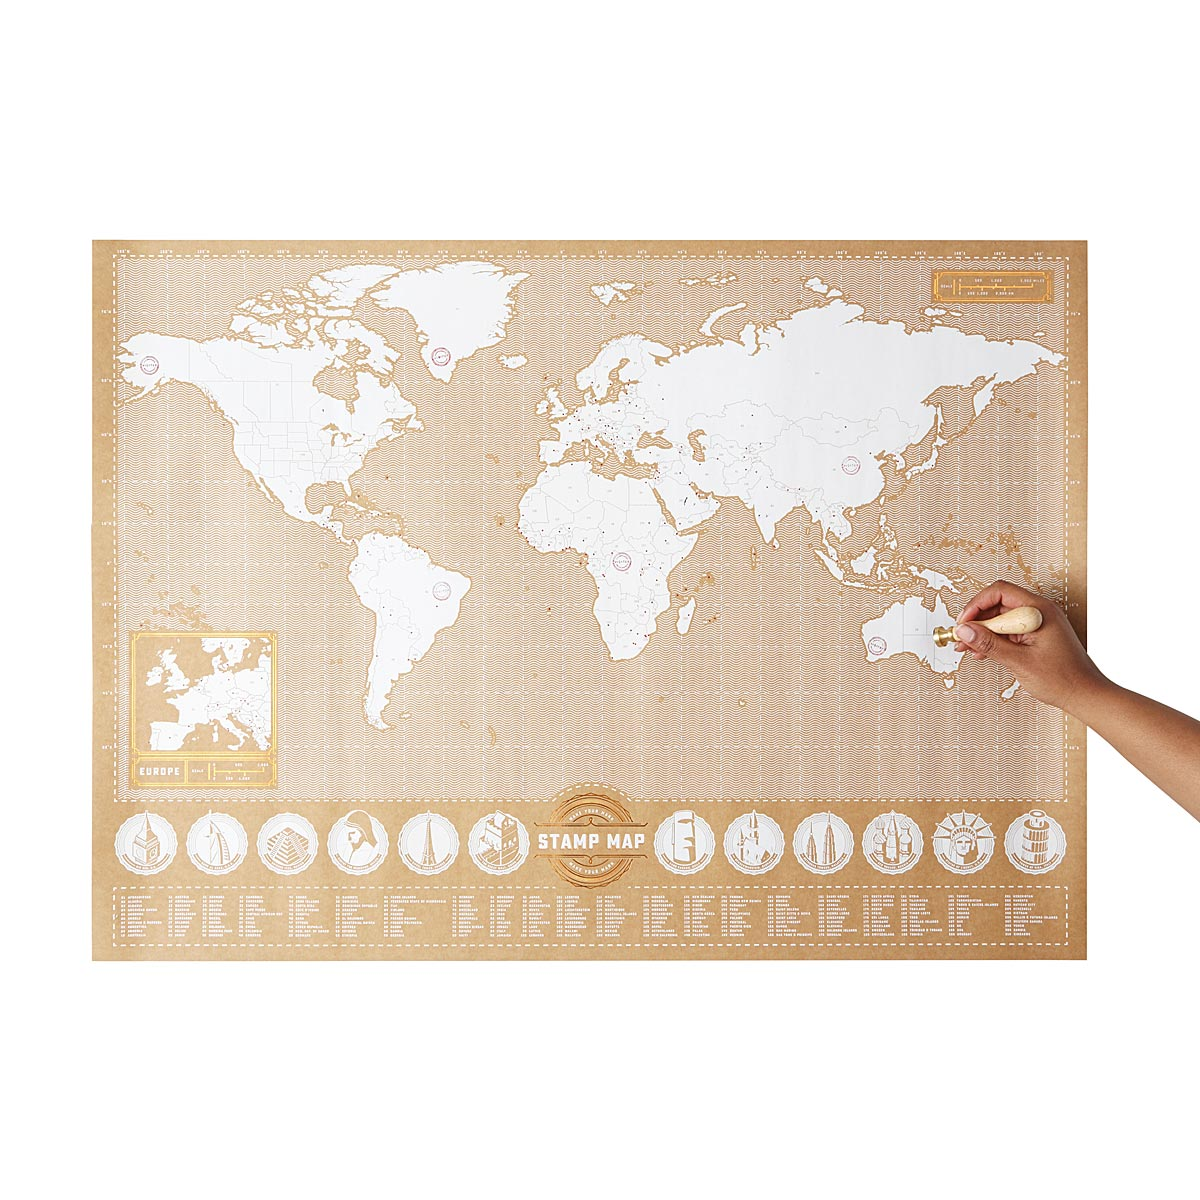 Like Coming Home Travel Maps Wanderlust And Goal FileUS Map